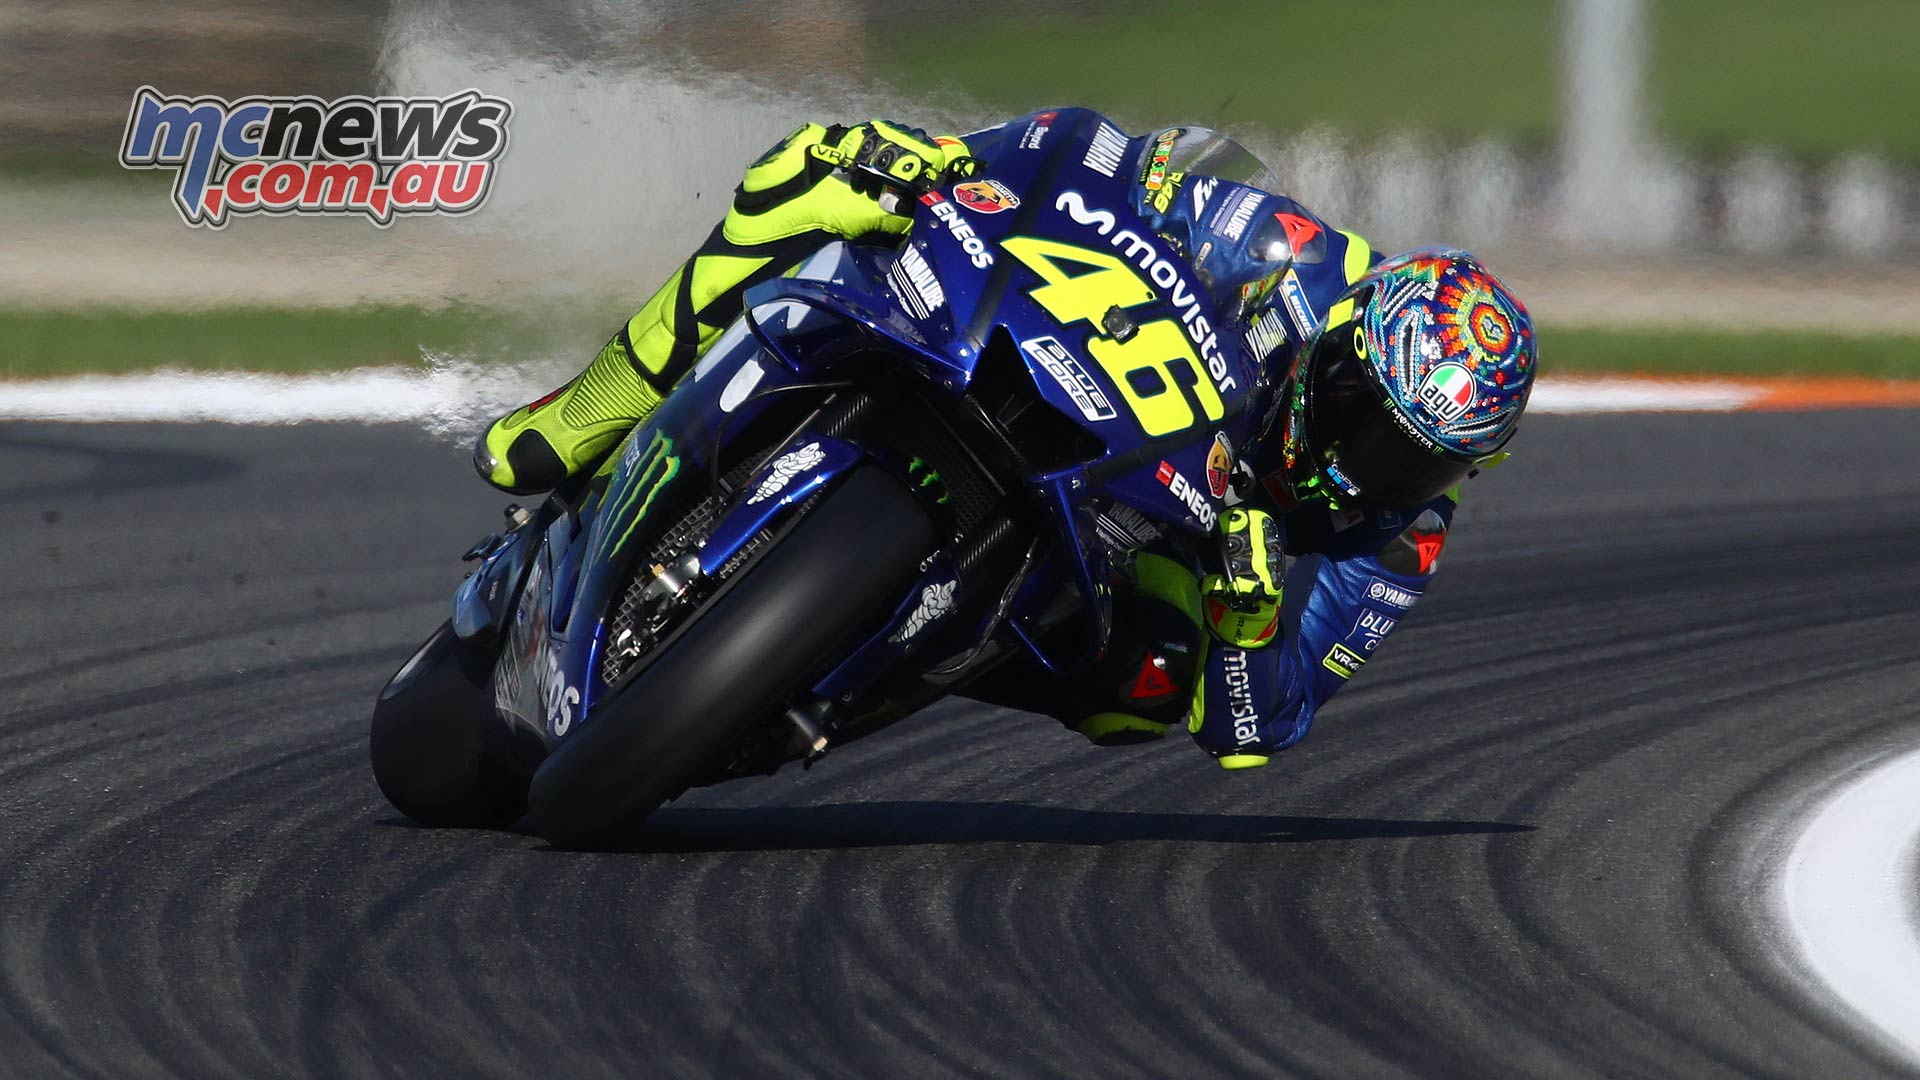 Valencia MotoGP 2019 Test Images Gallery D MCNewscomau 1920x1080